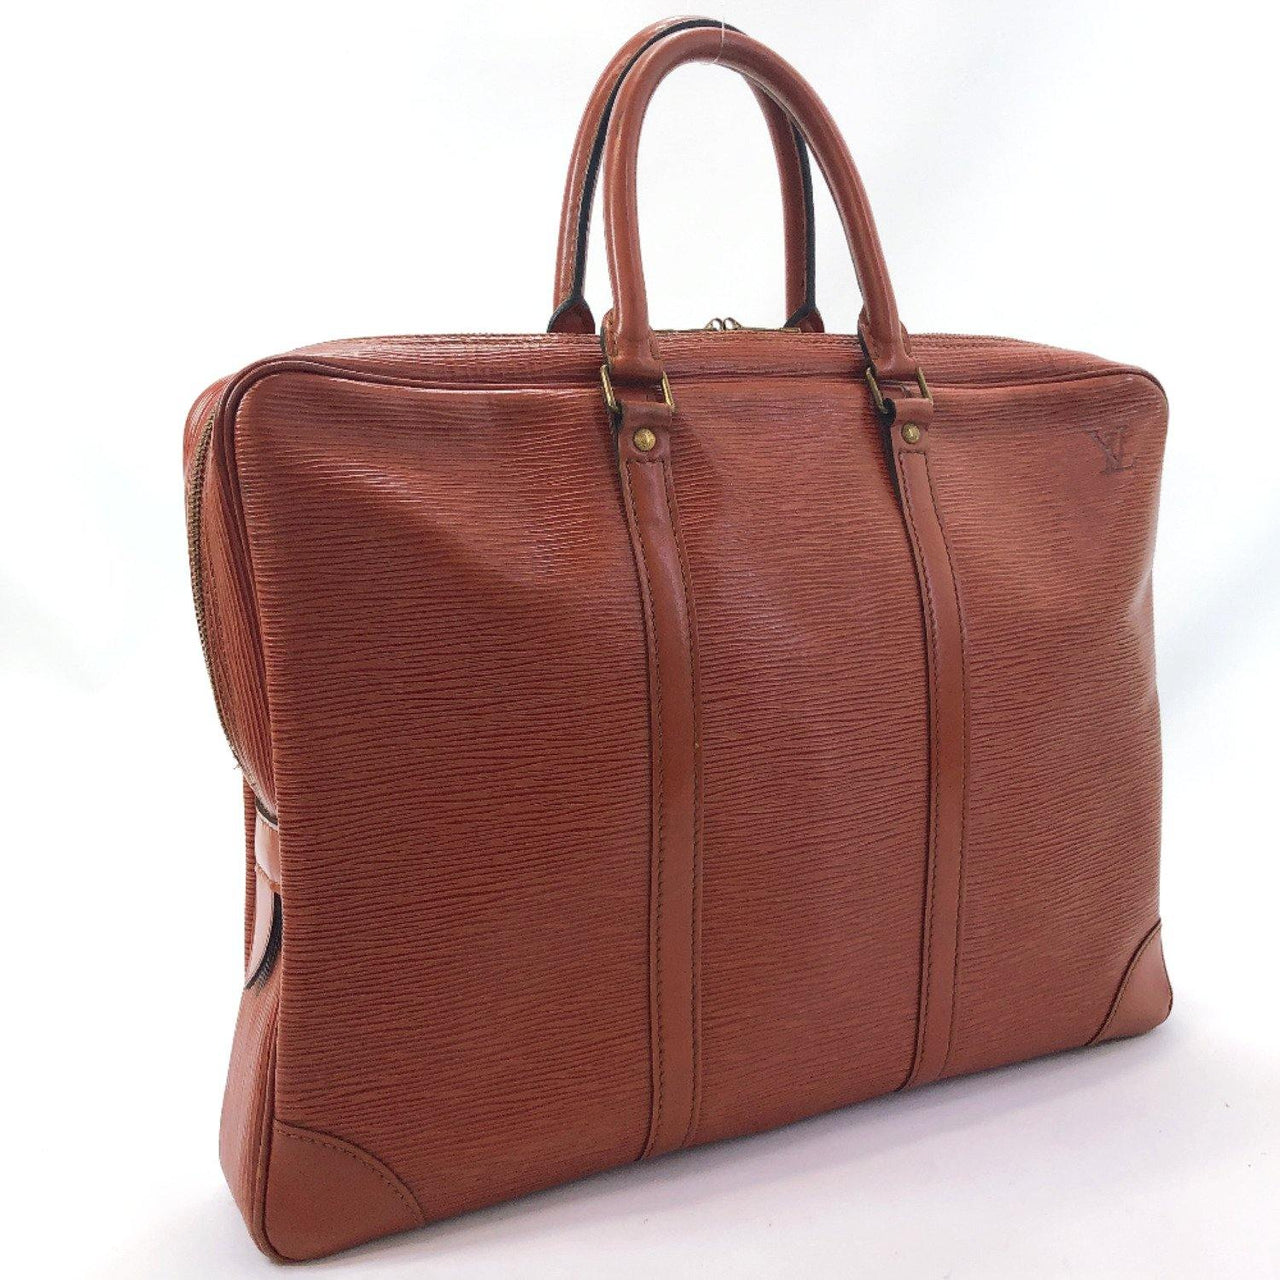 LOUIS VUITTON Business bag M54473 Porte Documan Voyagej vintage Epi Leather Brown Kenya Brown mens Used - JP-BRANDS.com